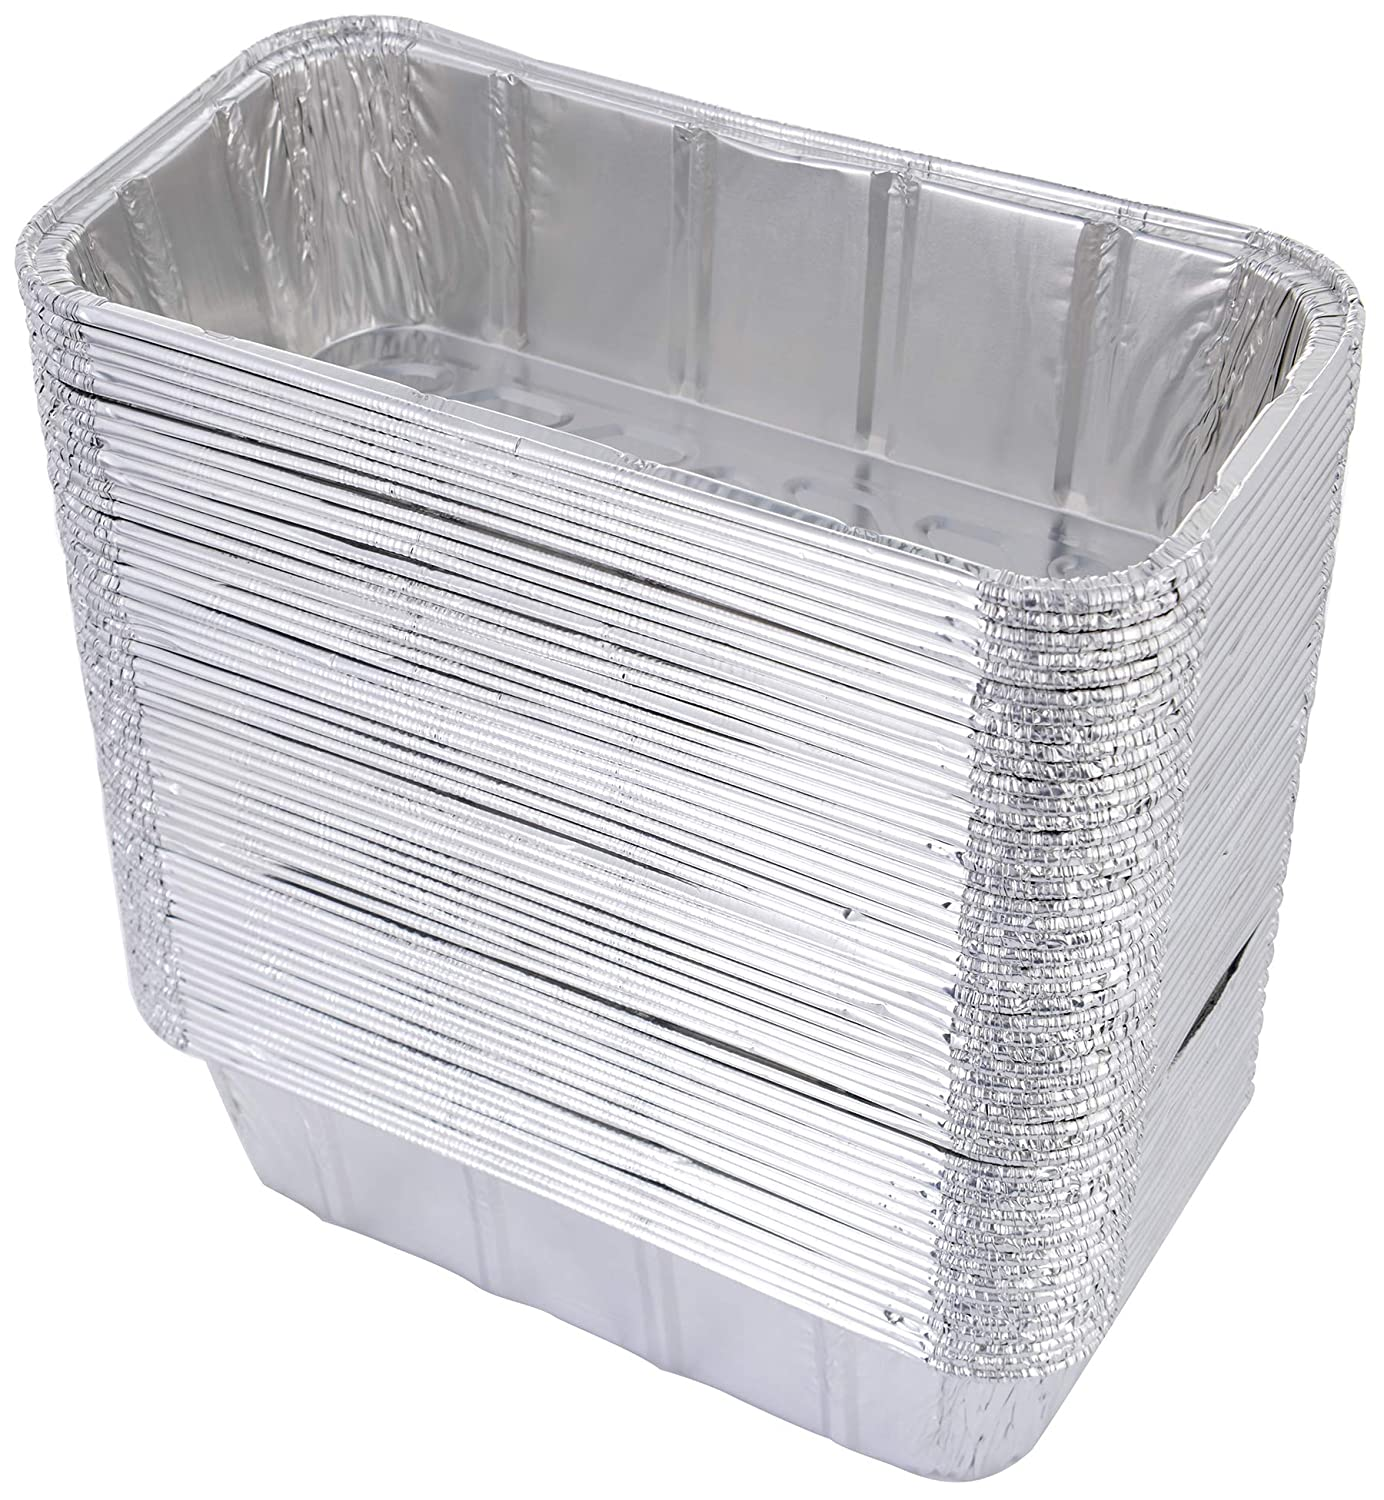 "DOBI (50 Pack) Loaf Pans - Disposable Aluminum Foil 2Lb Bread Tins, Standard Size - 8.5"" X 4.5"" X 2.5"""